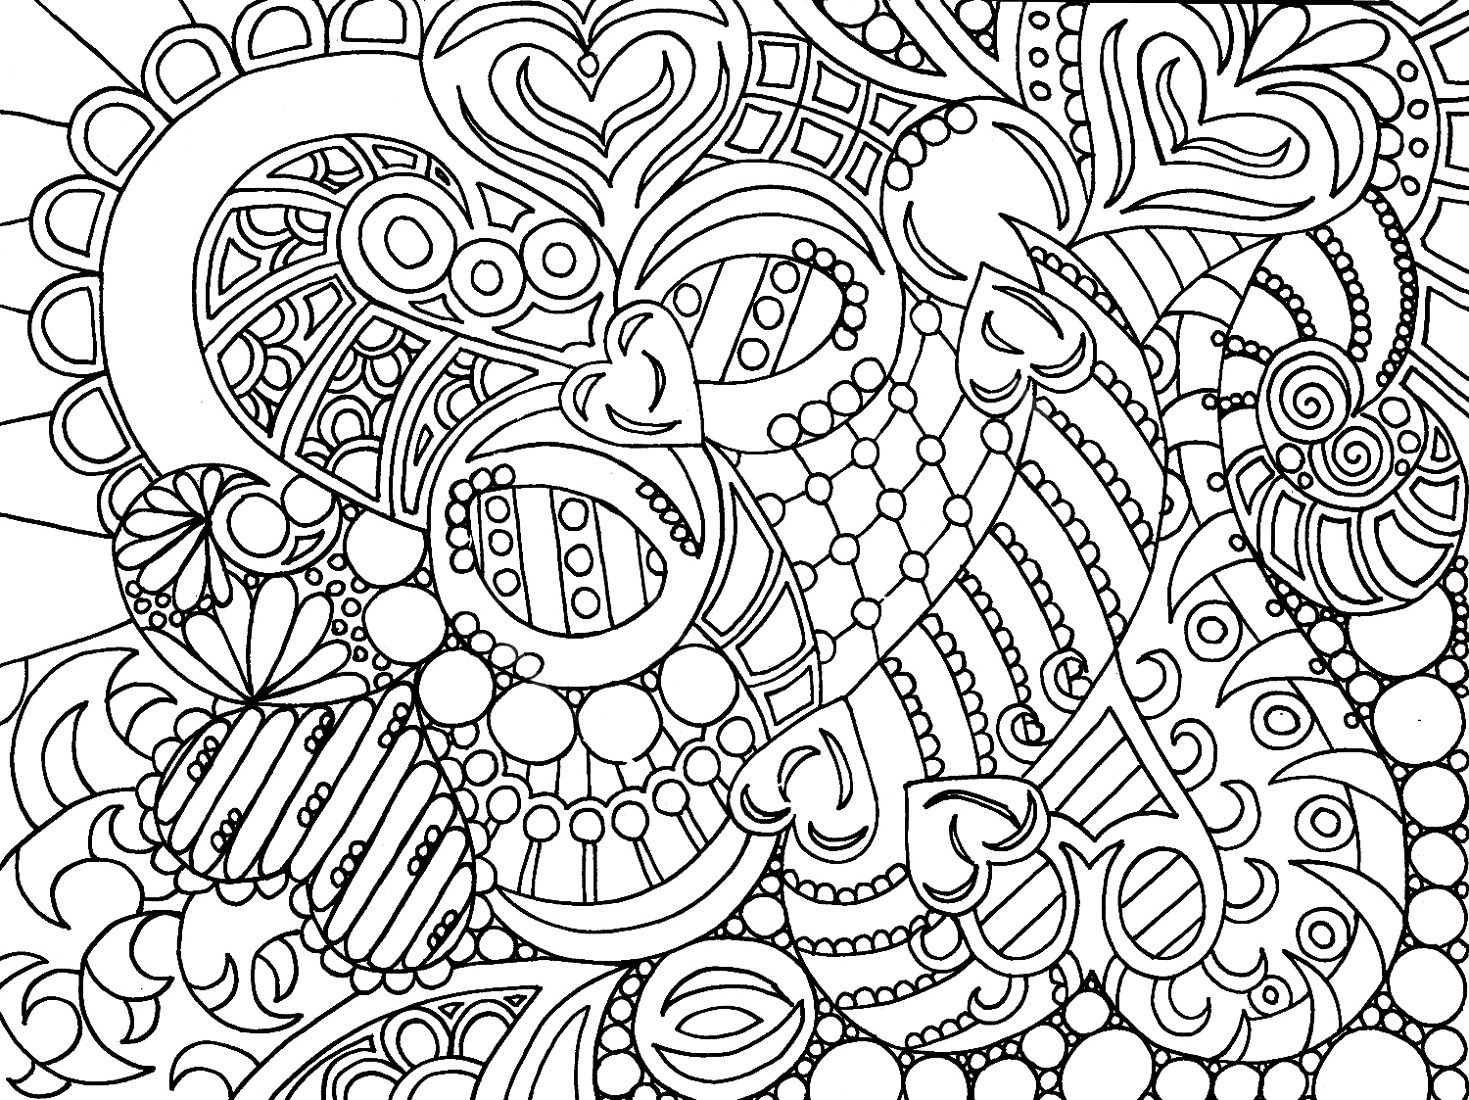 Coloring Pages for Teens to Print | Learning Printable